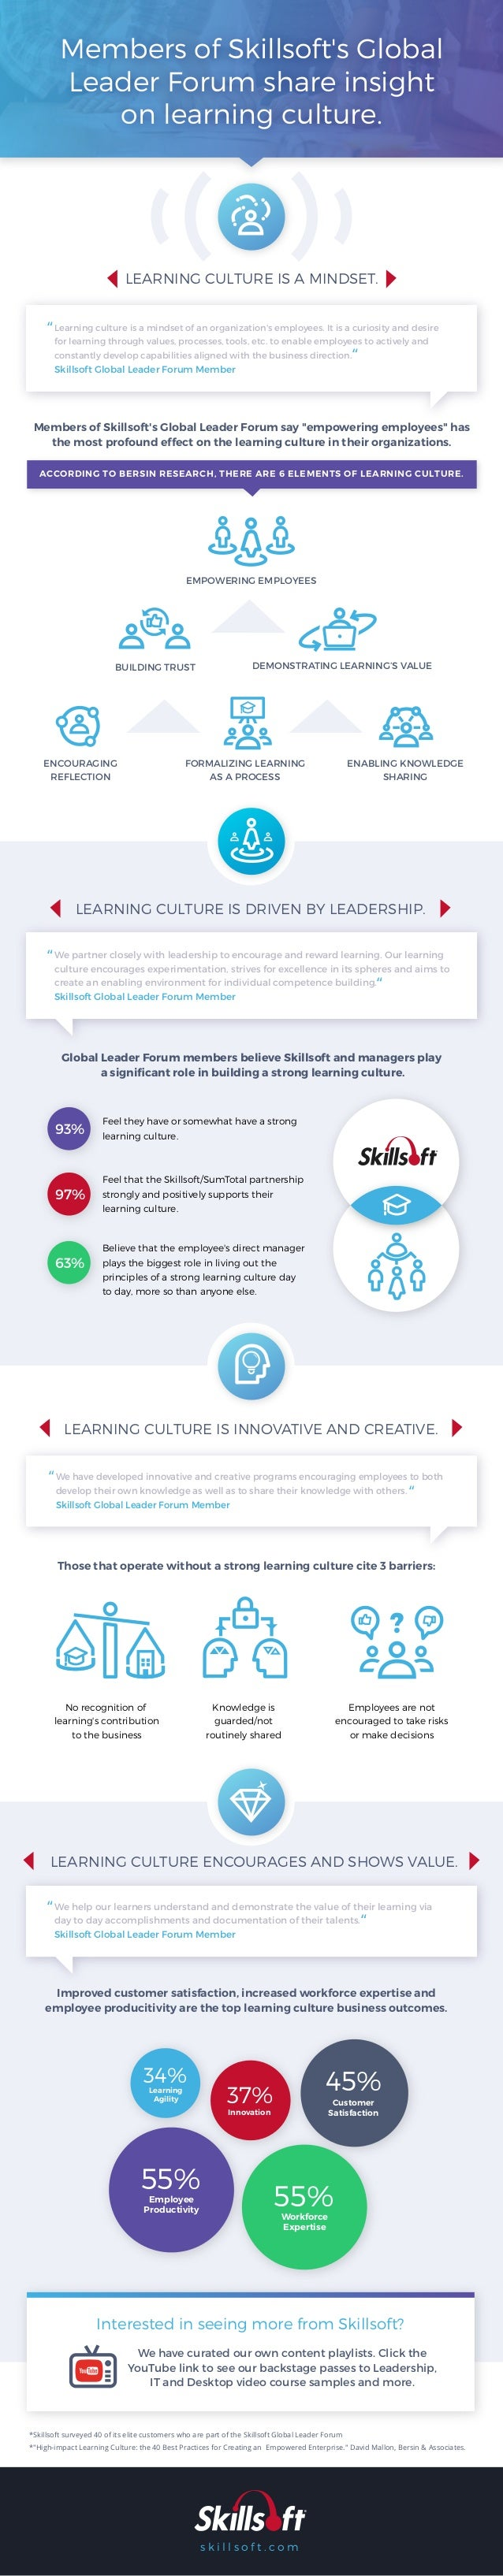 Members of Skillsoft's Global Leader Forum share insight on learning culture. Members of Skillsoft's Global Leader Forum s...